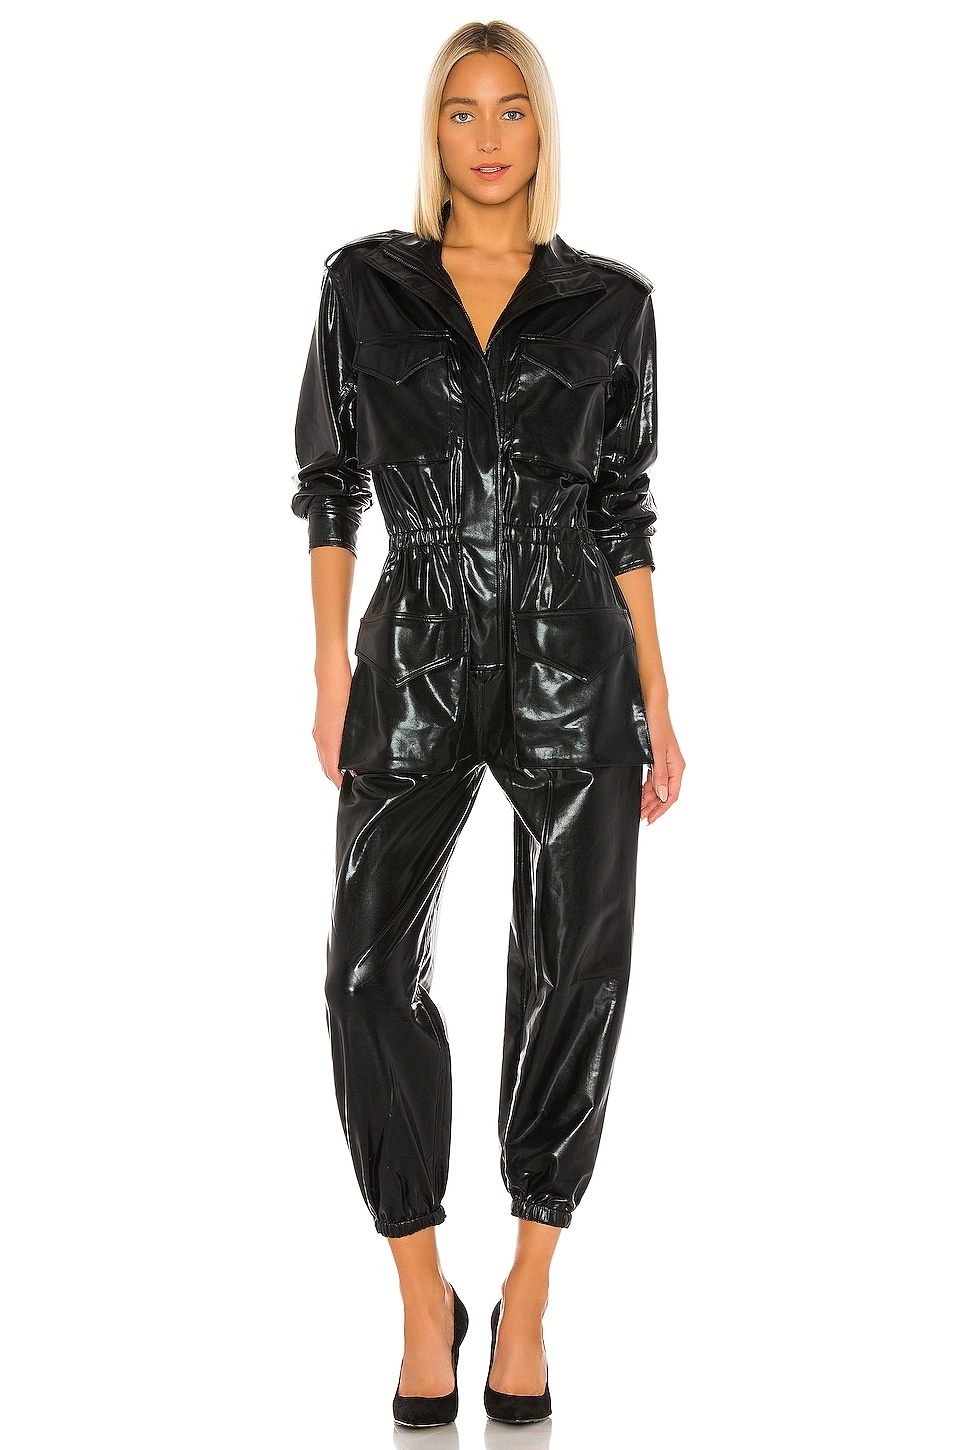 Norma Kamali Turtle Cargo Jumpsuit in Black Foil